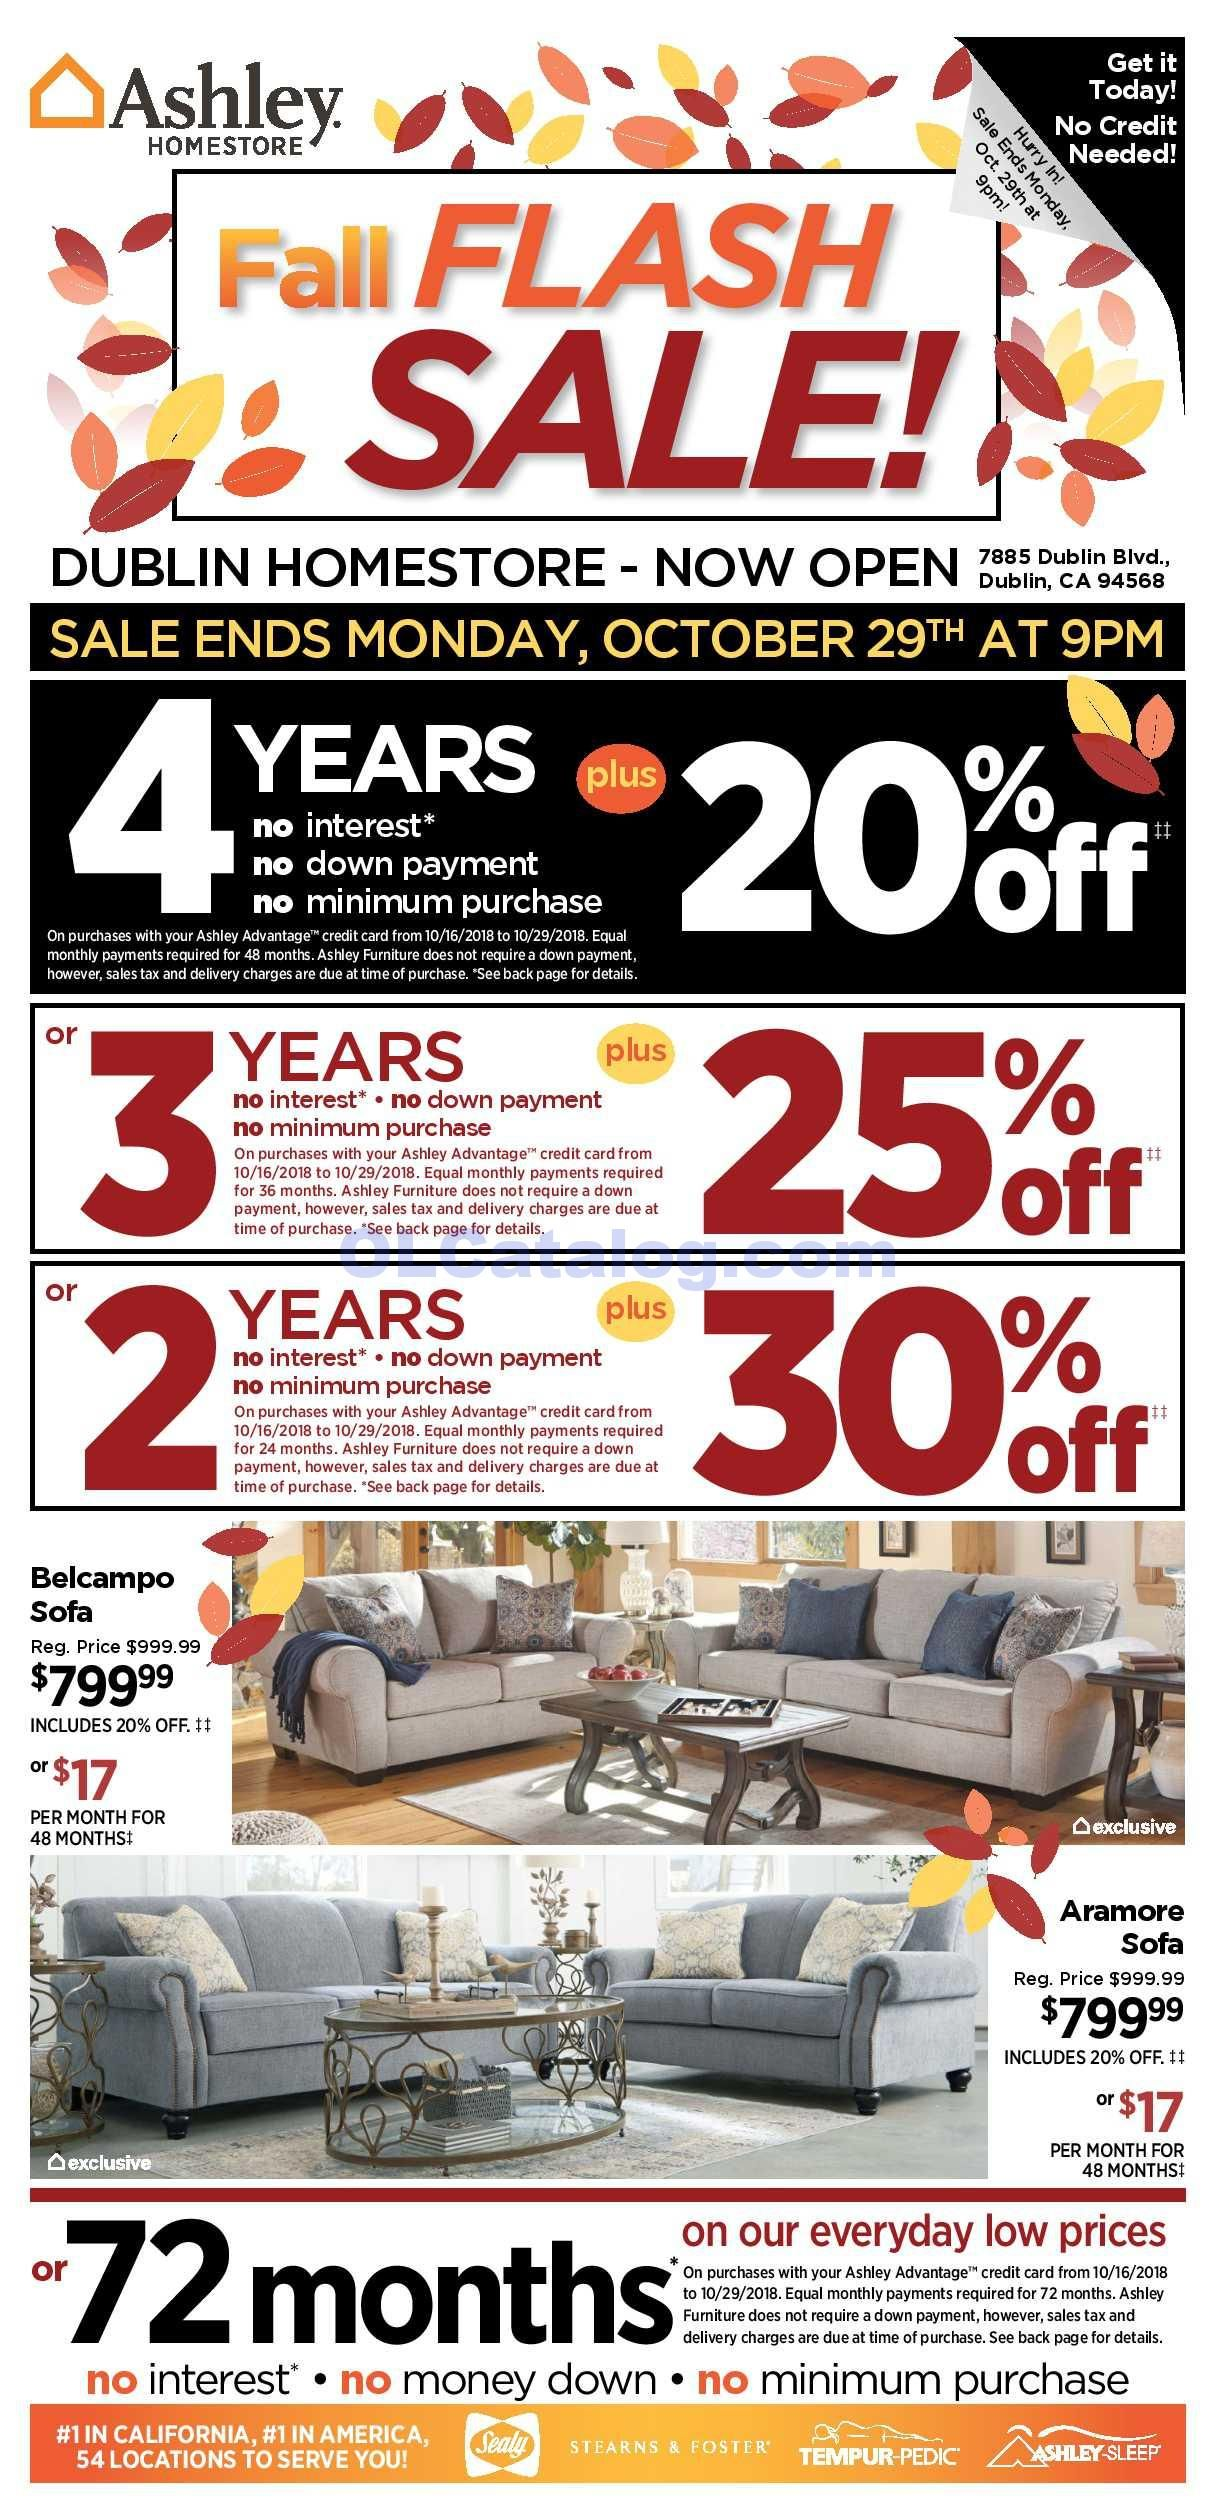 Ashley Furniture Homestore Ad October 16 22 2018 Do You Know What S In And What S Hot In The Ashley Furniture For This Week If You Haven T Using The Store